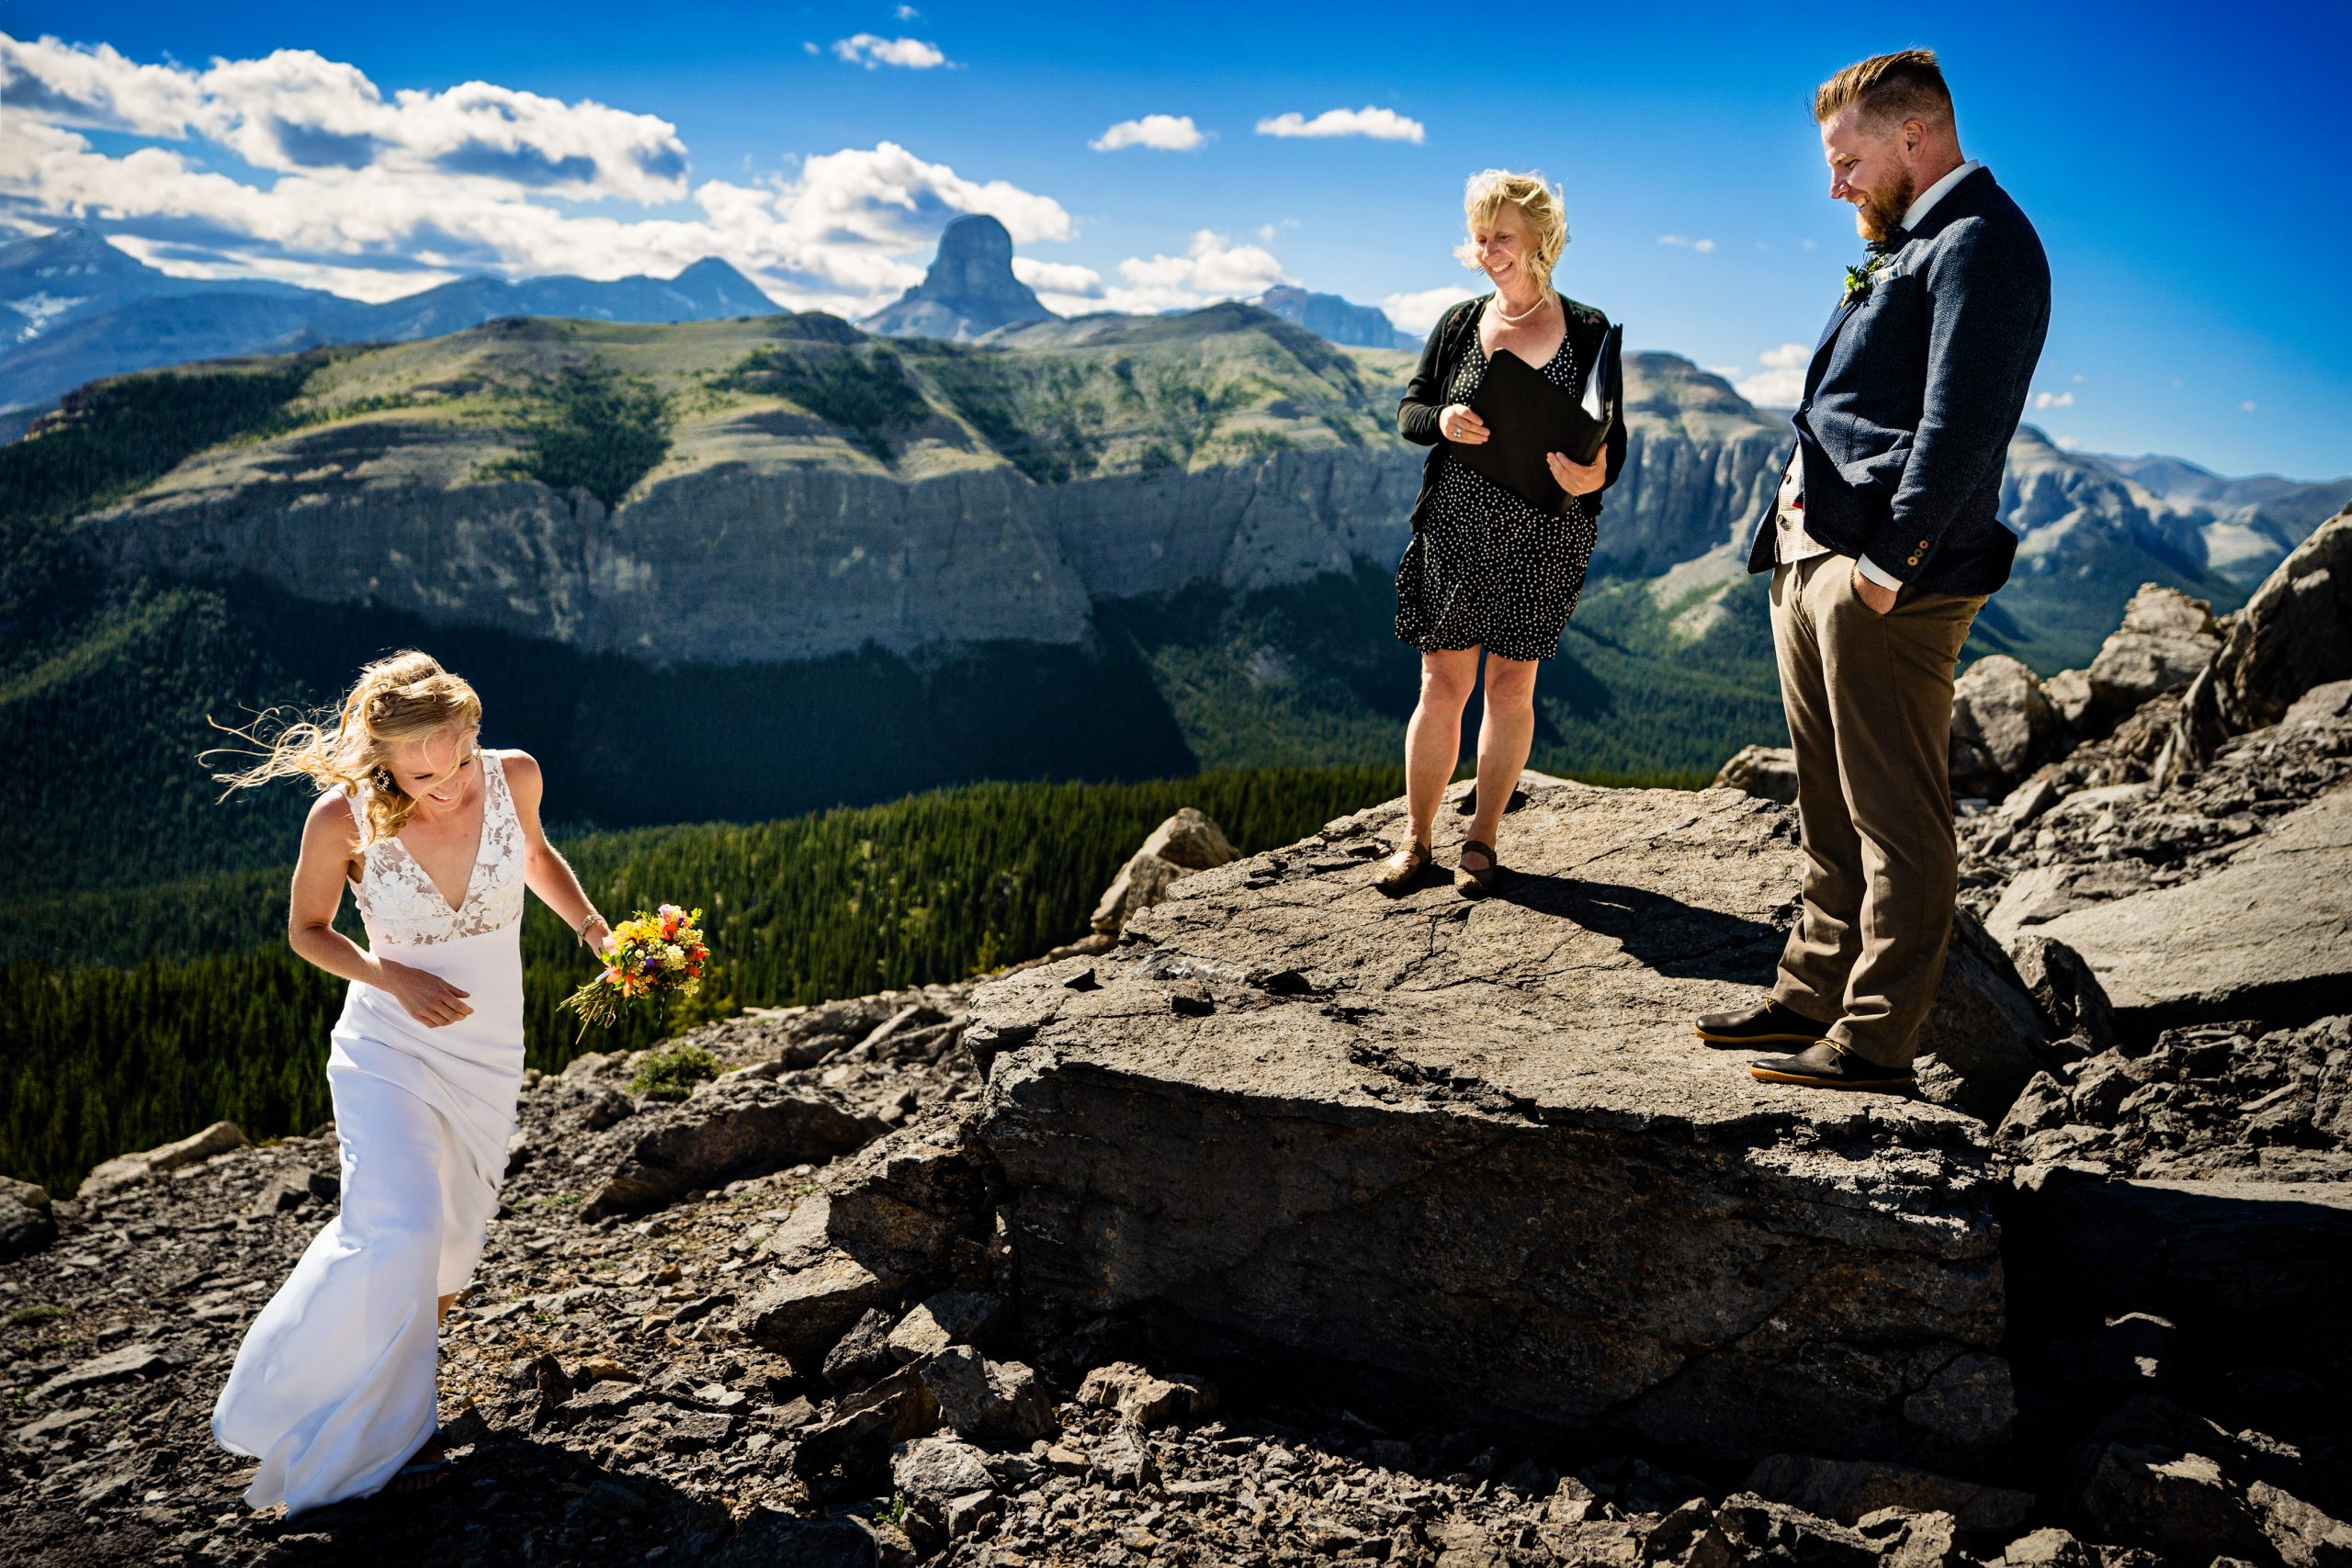 photo of a couple getting married at the top of a moutain